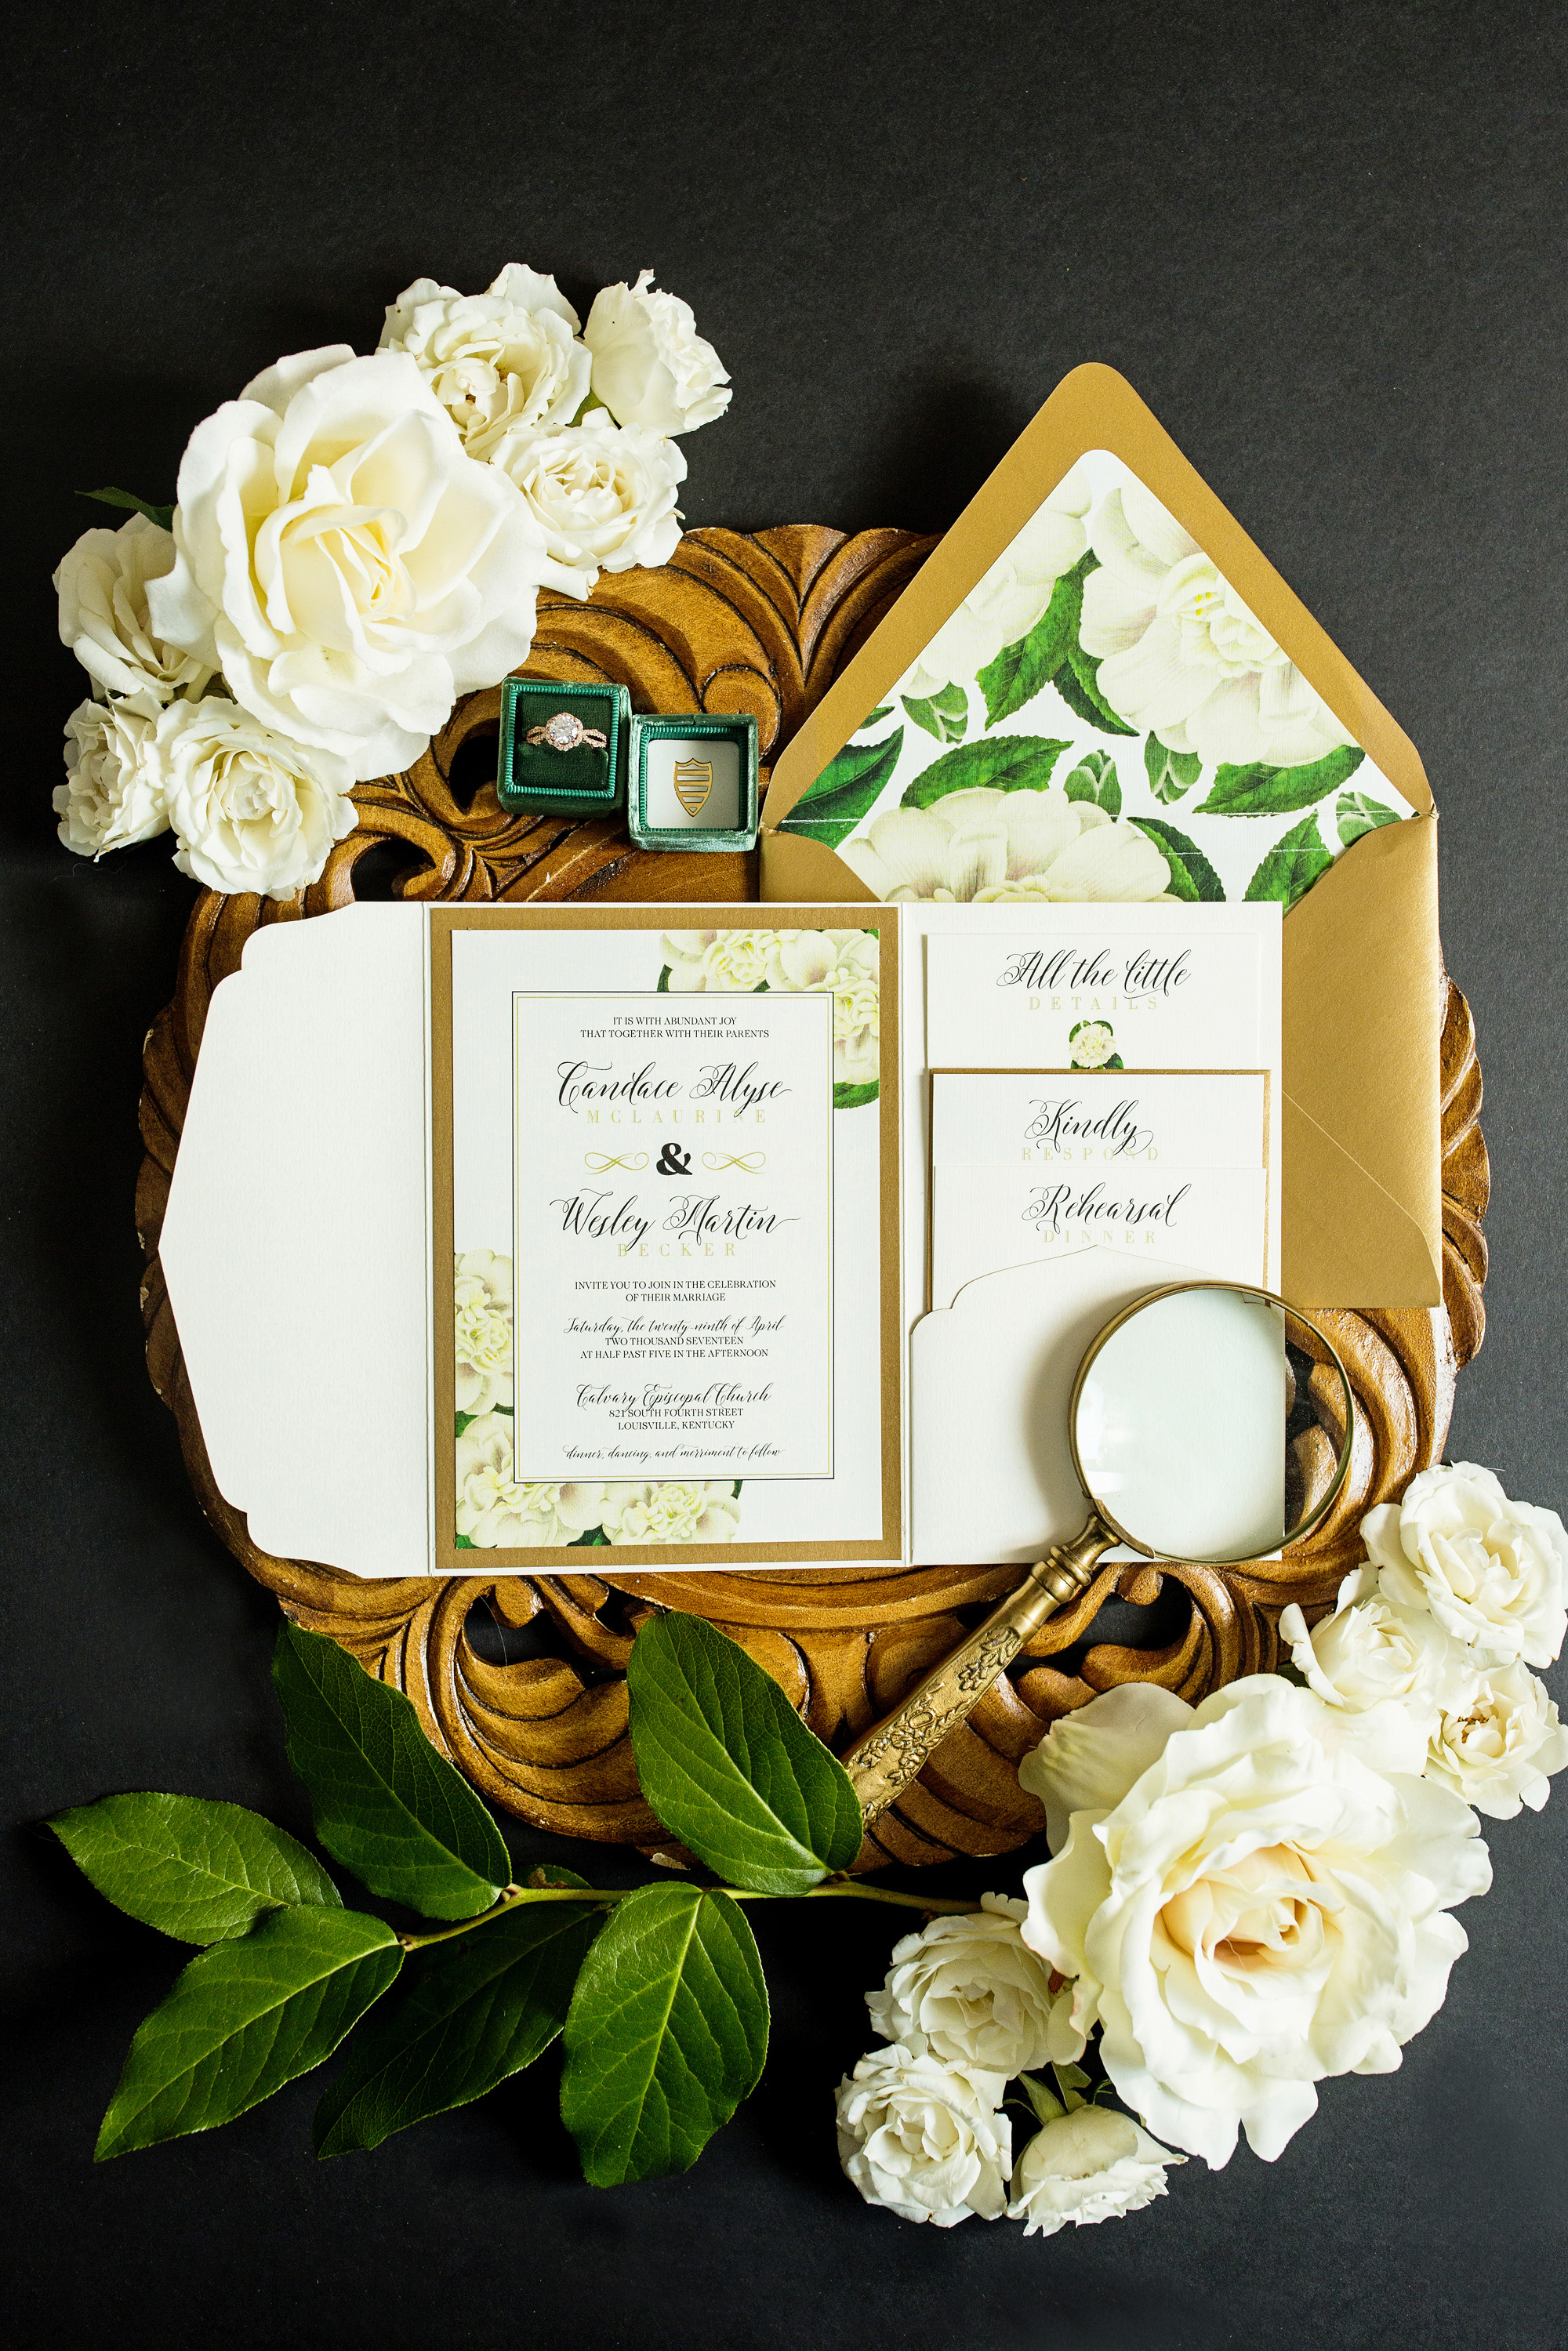 Seriously_Sabrina_Photography_Commercial_Simply_Done_Invites_2019_March_101